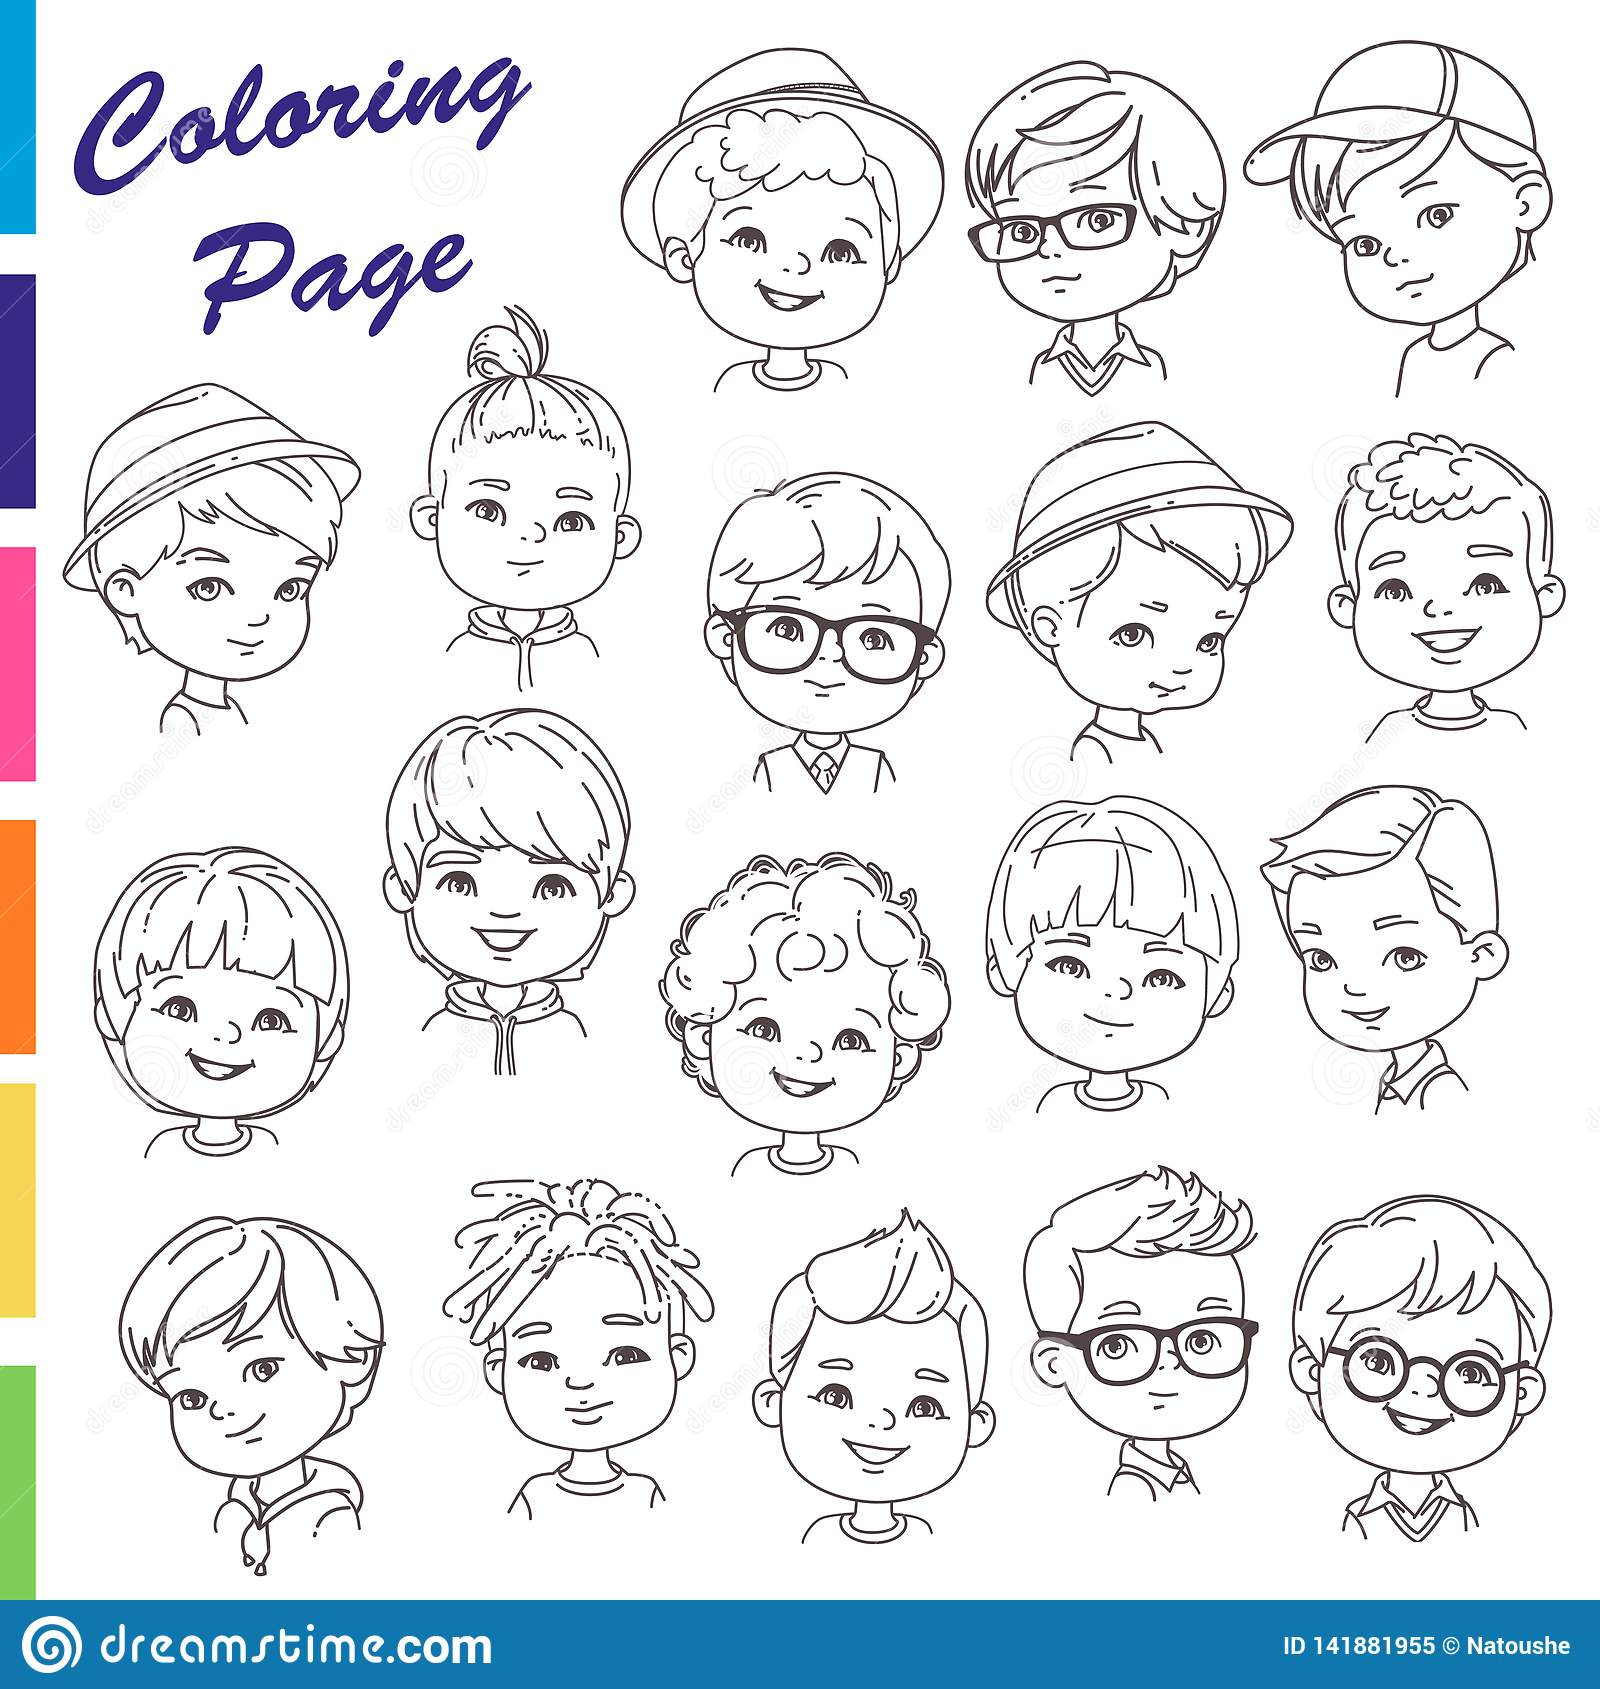 Free coloring pages, printables - Topcoloringpages.net | 1689x1600